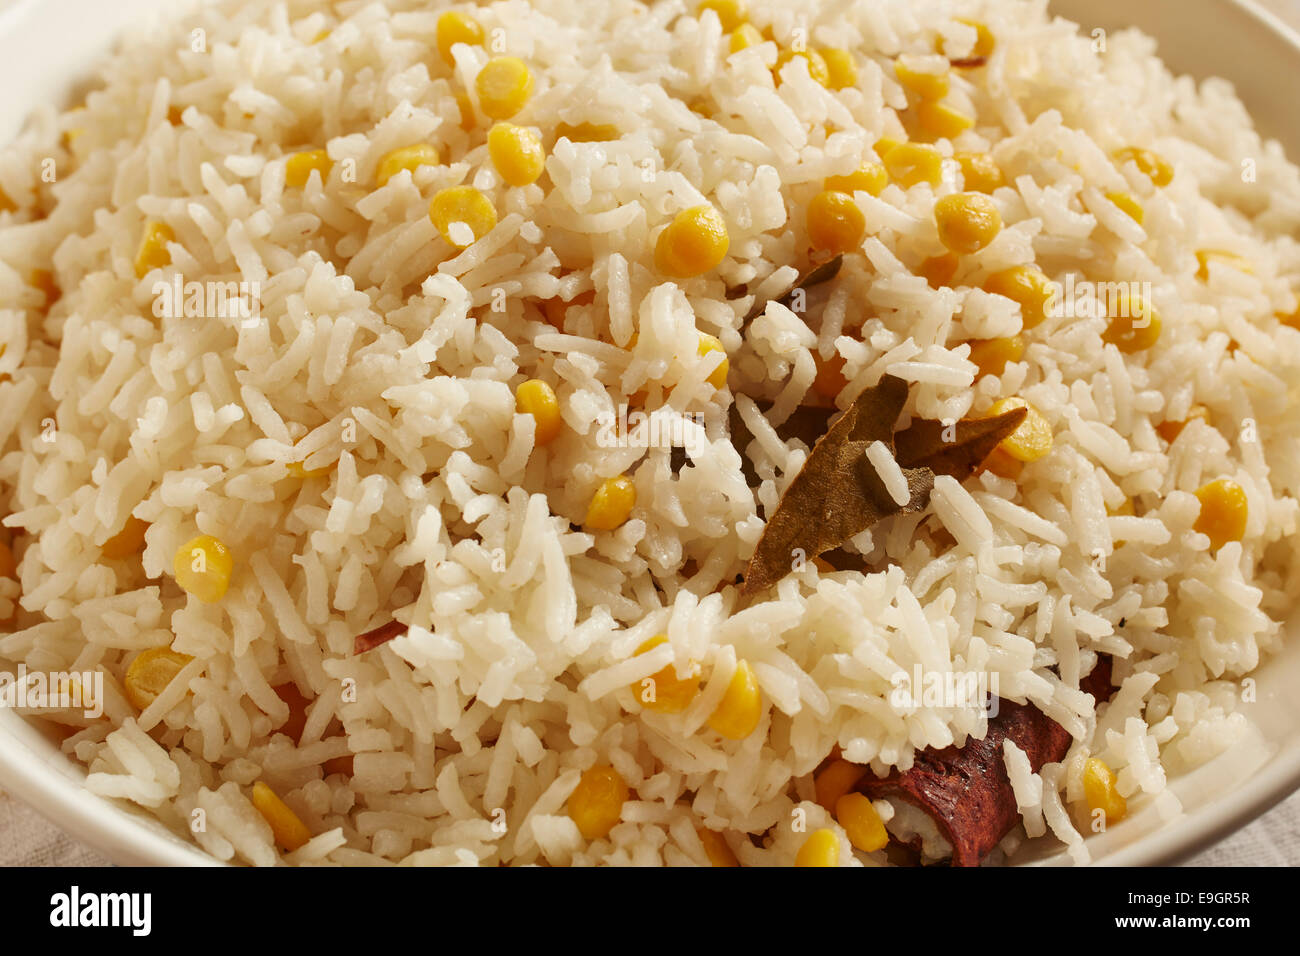 Burmese Style Rice and Lentils - Stock Image